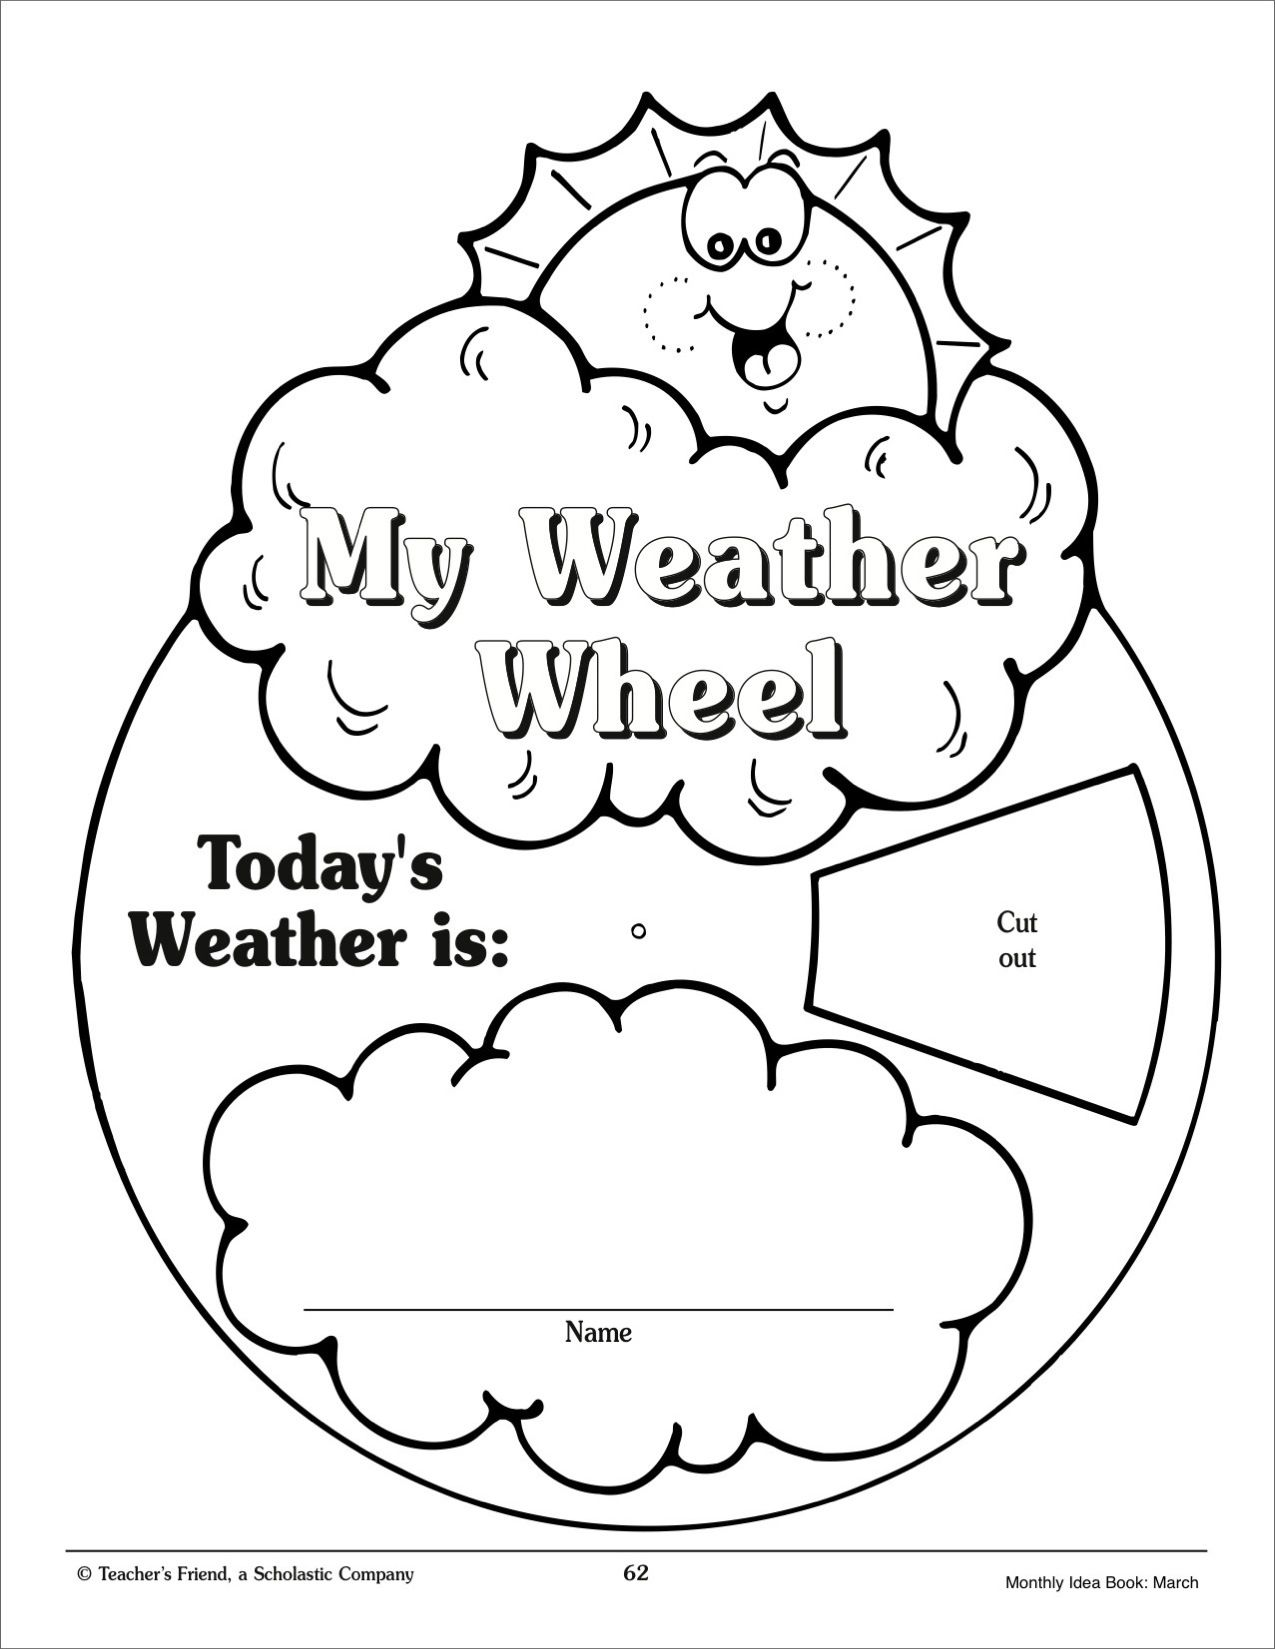 Color wheel worksheets for elementary - My Weather Wheel March Monthly Idea Book Printables Teaching